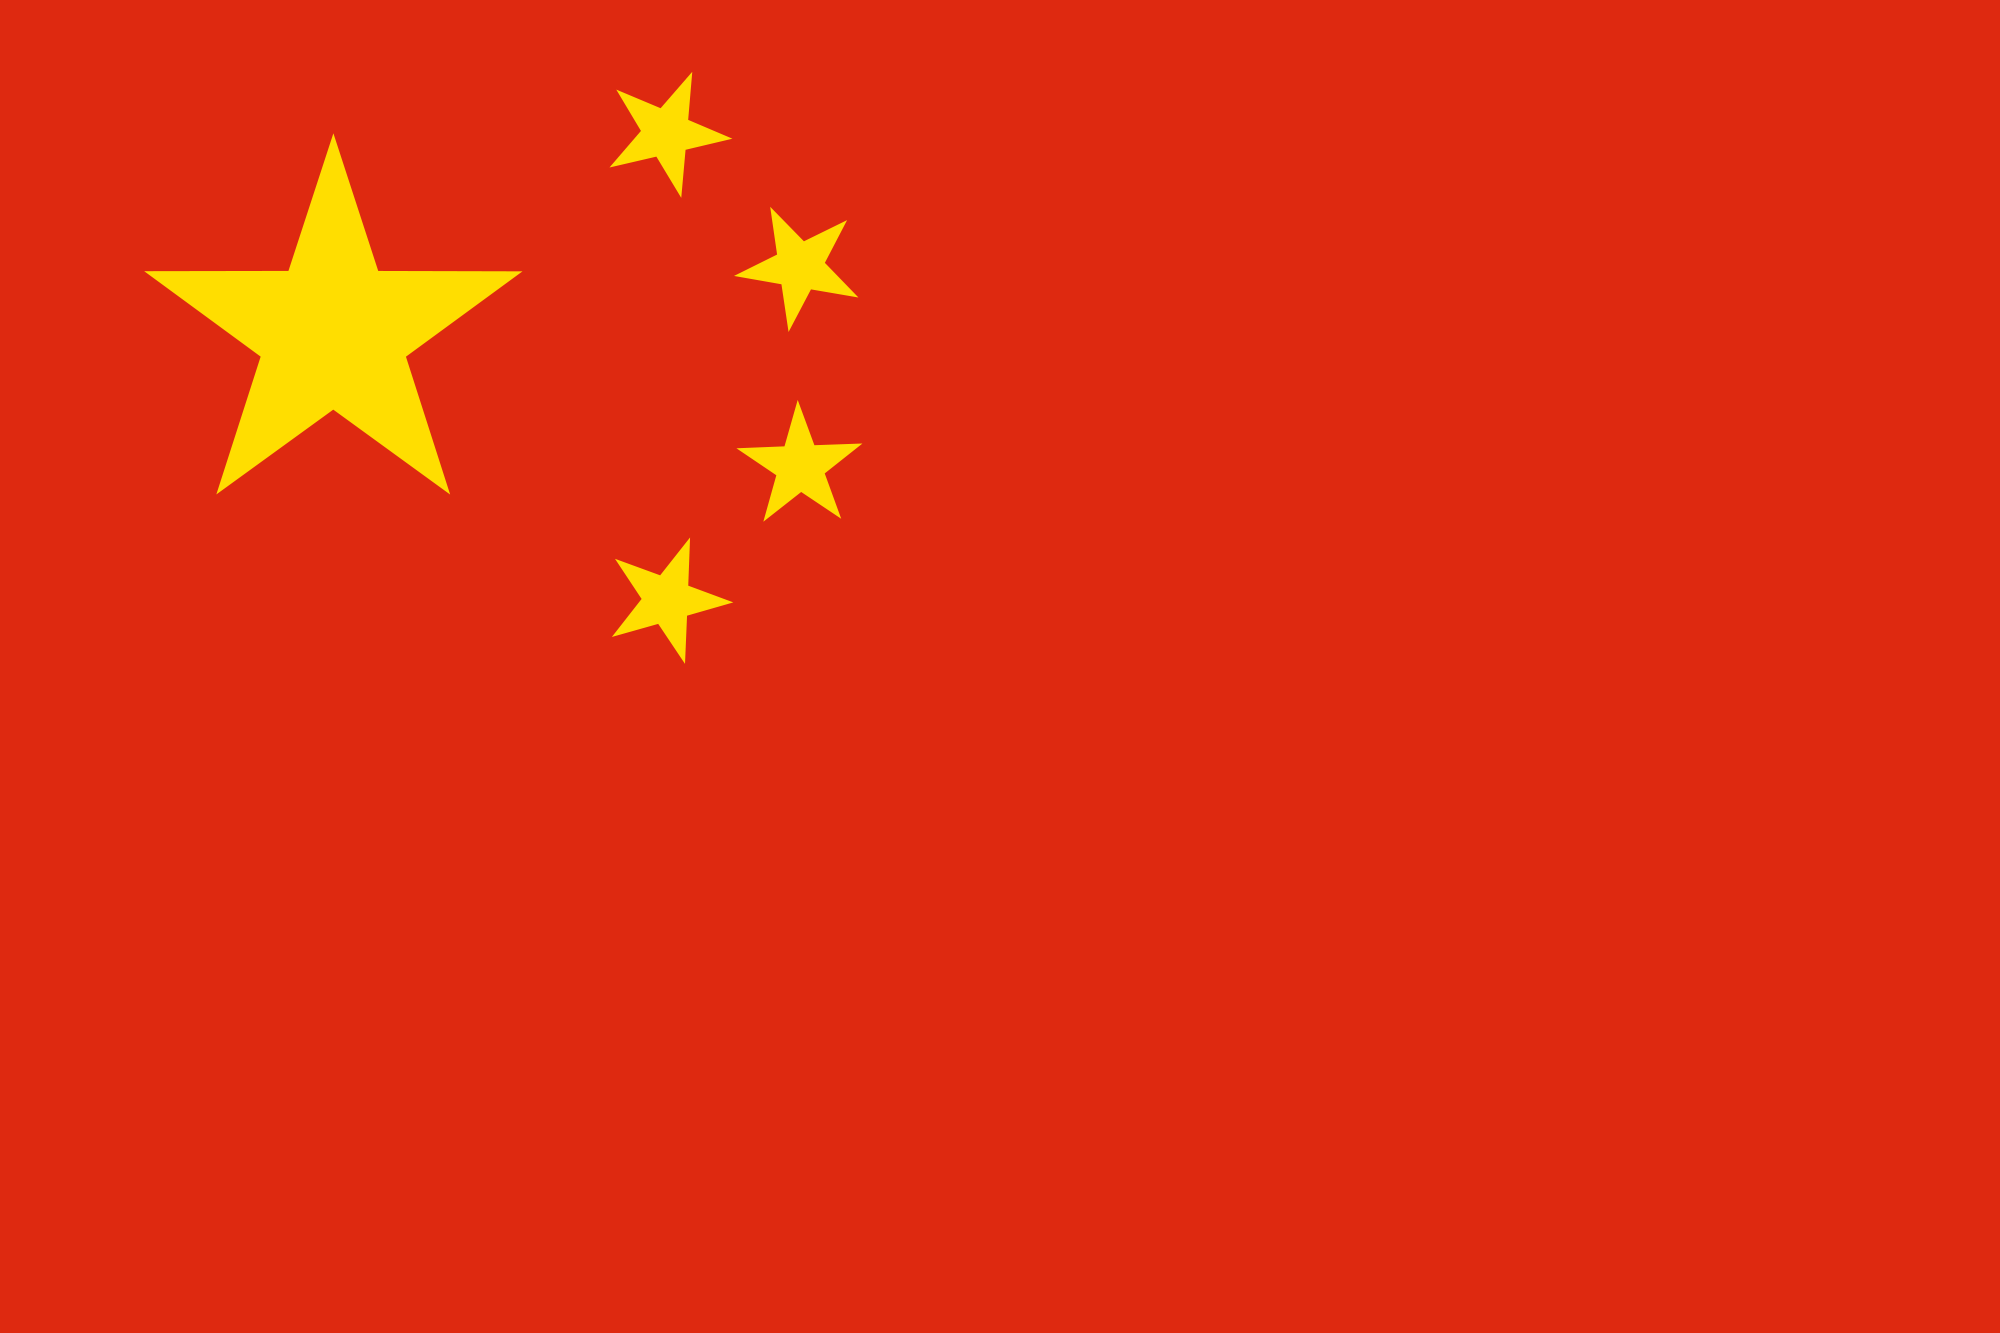 Fichier:Flag of China.png